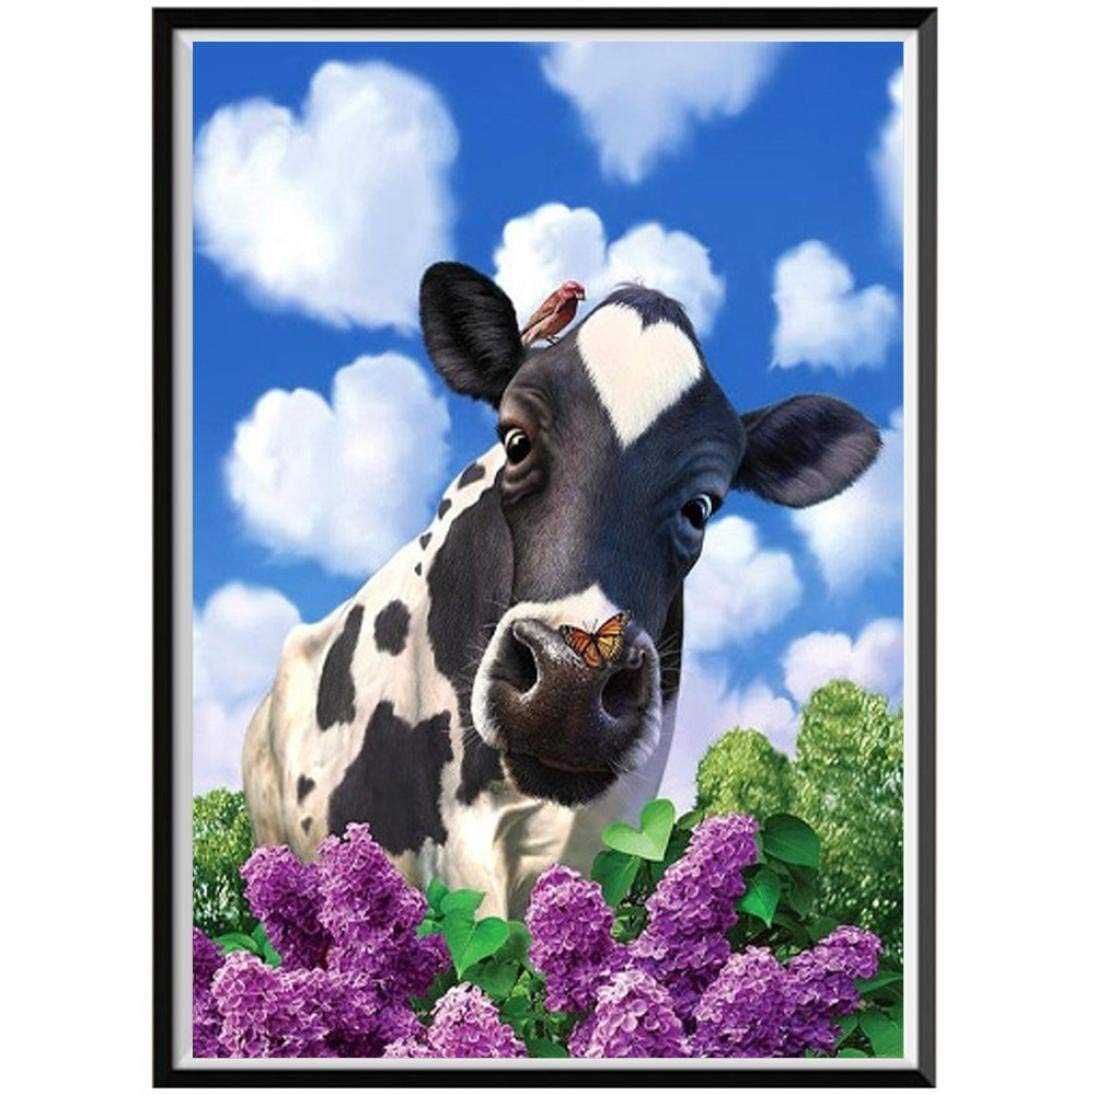 Franterd Lovely Animal - Cows, DIY 5D Diamond Painting Kit, Cross Stitch Craft Kits Rhinestone Embroidery Wall Stickers Pasted Picture Drawing for Living Room Craft Home Wall Decor